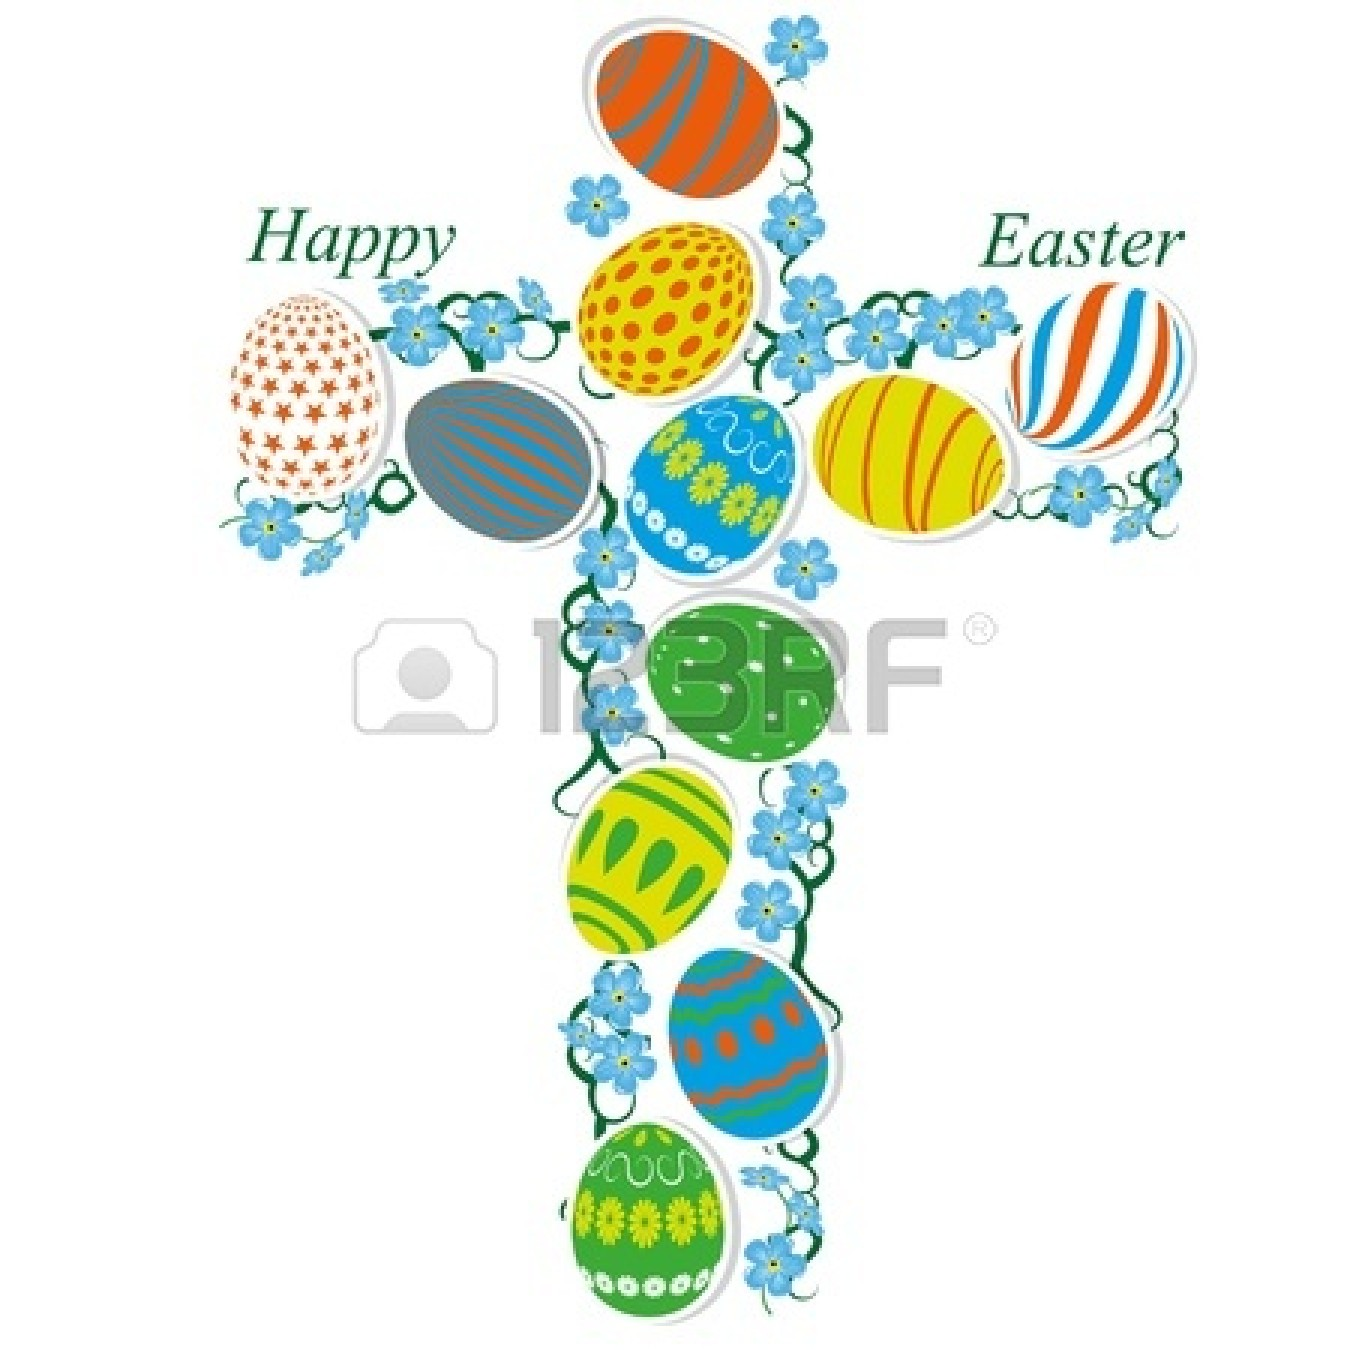 Free Catholic Easter Cliparts, Download Free Clip Art, Free Clip Art.